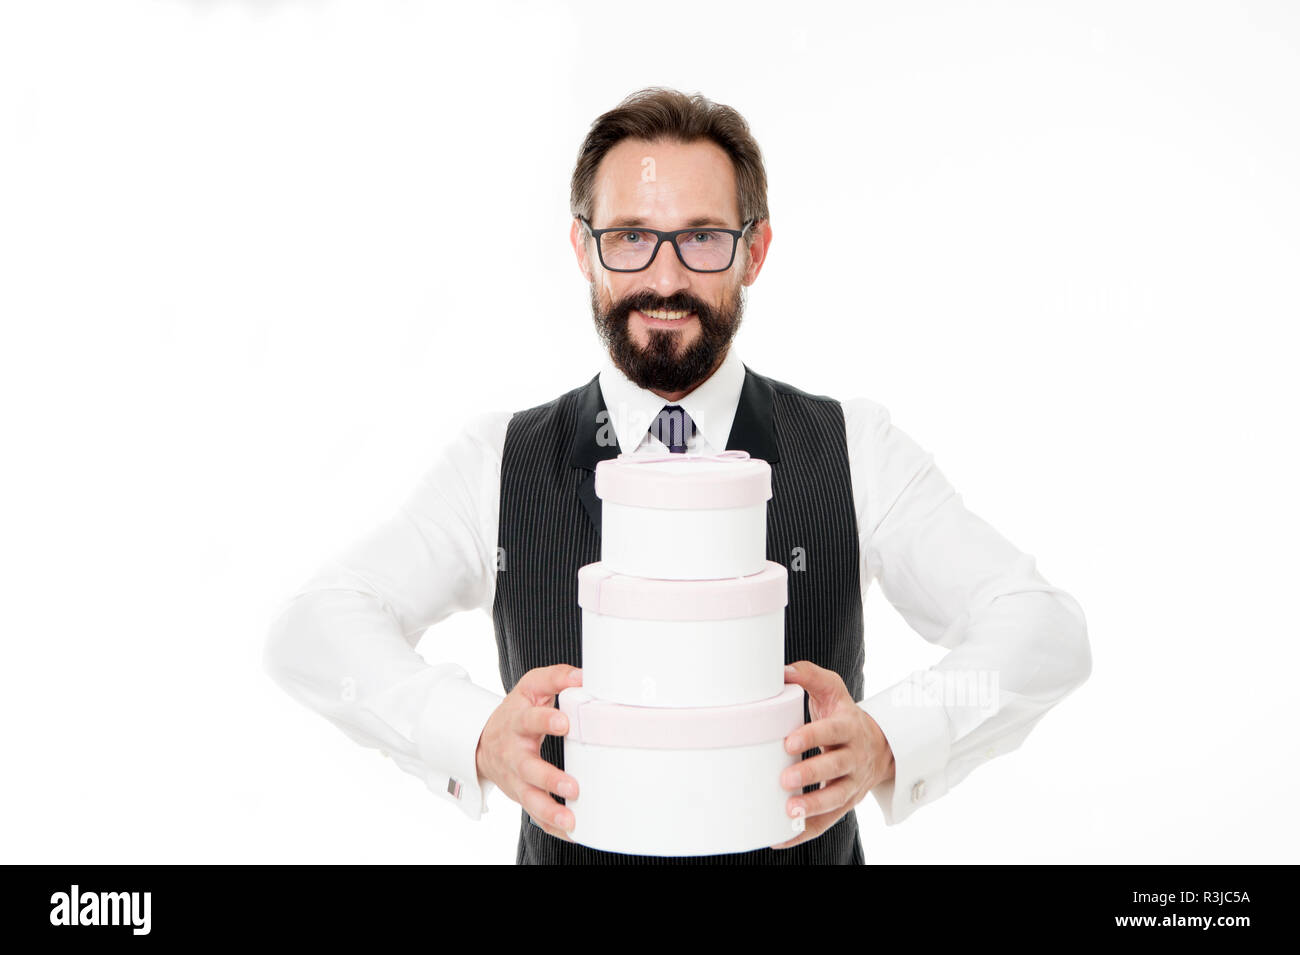 Offer bonus to your client. Man bearded businessman formal wear holds pile of gift boxes white background. Banking bonus benefits. Celebrate corporate - Stock Image